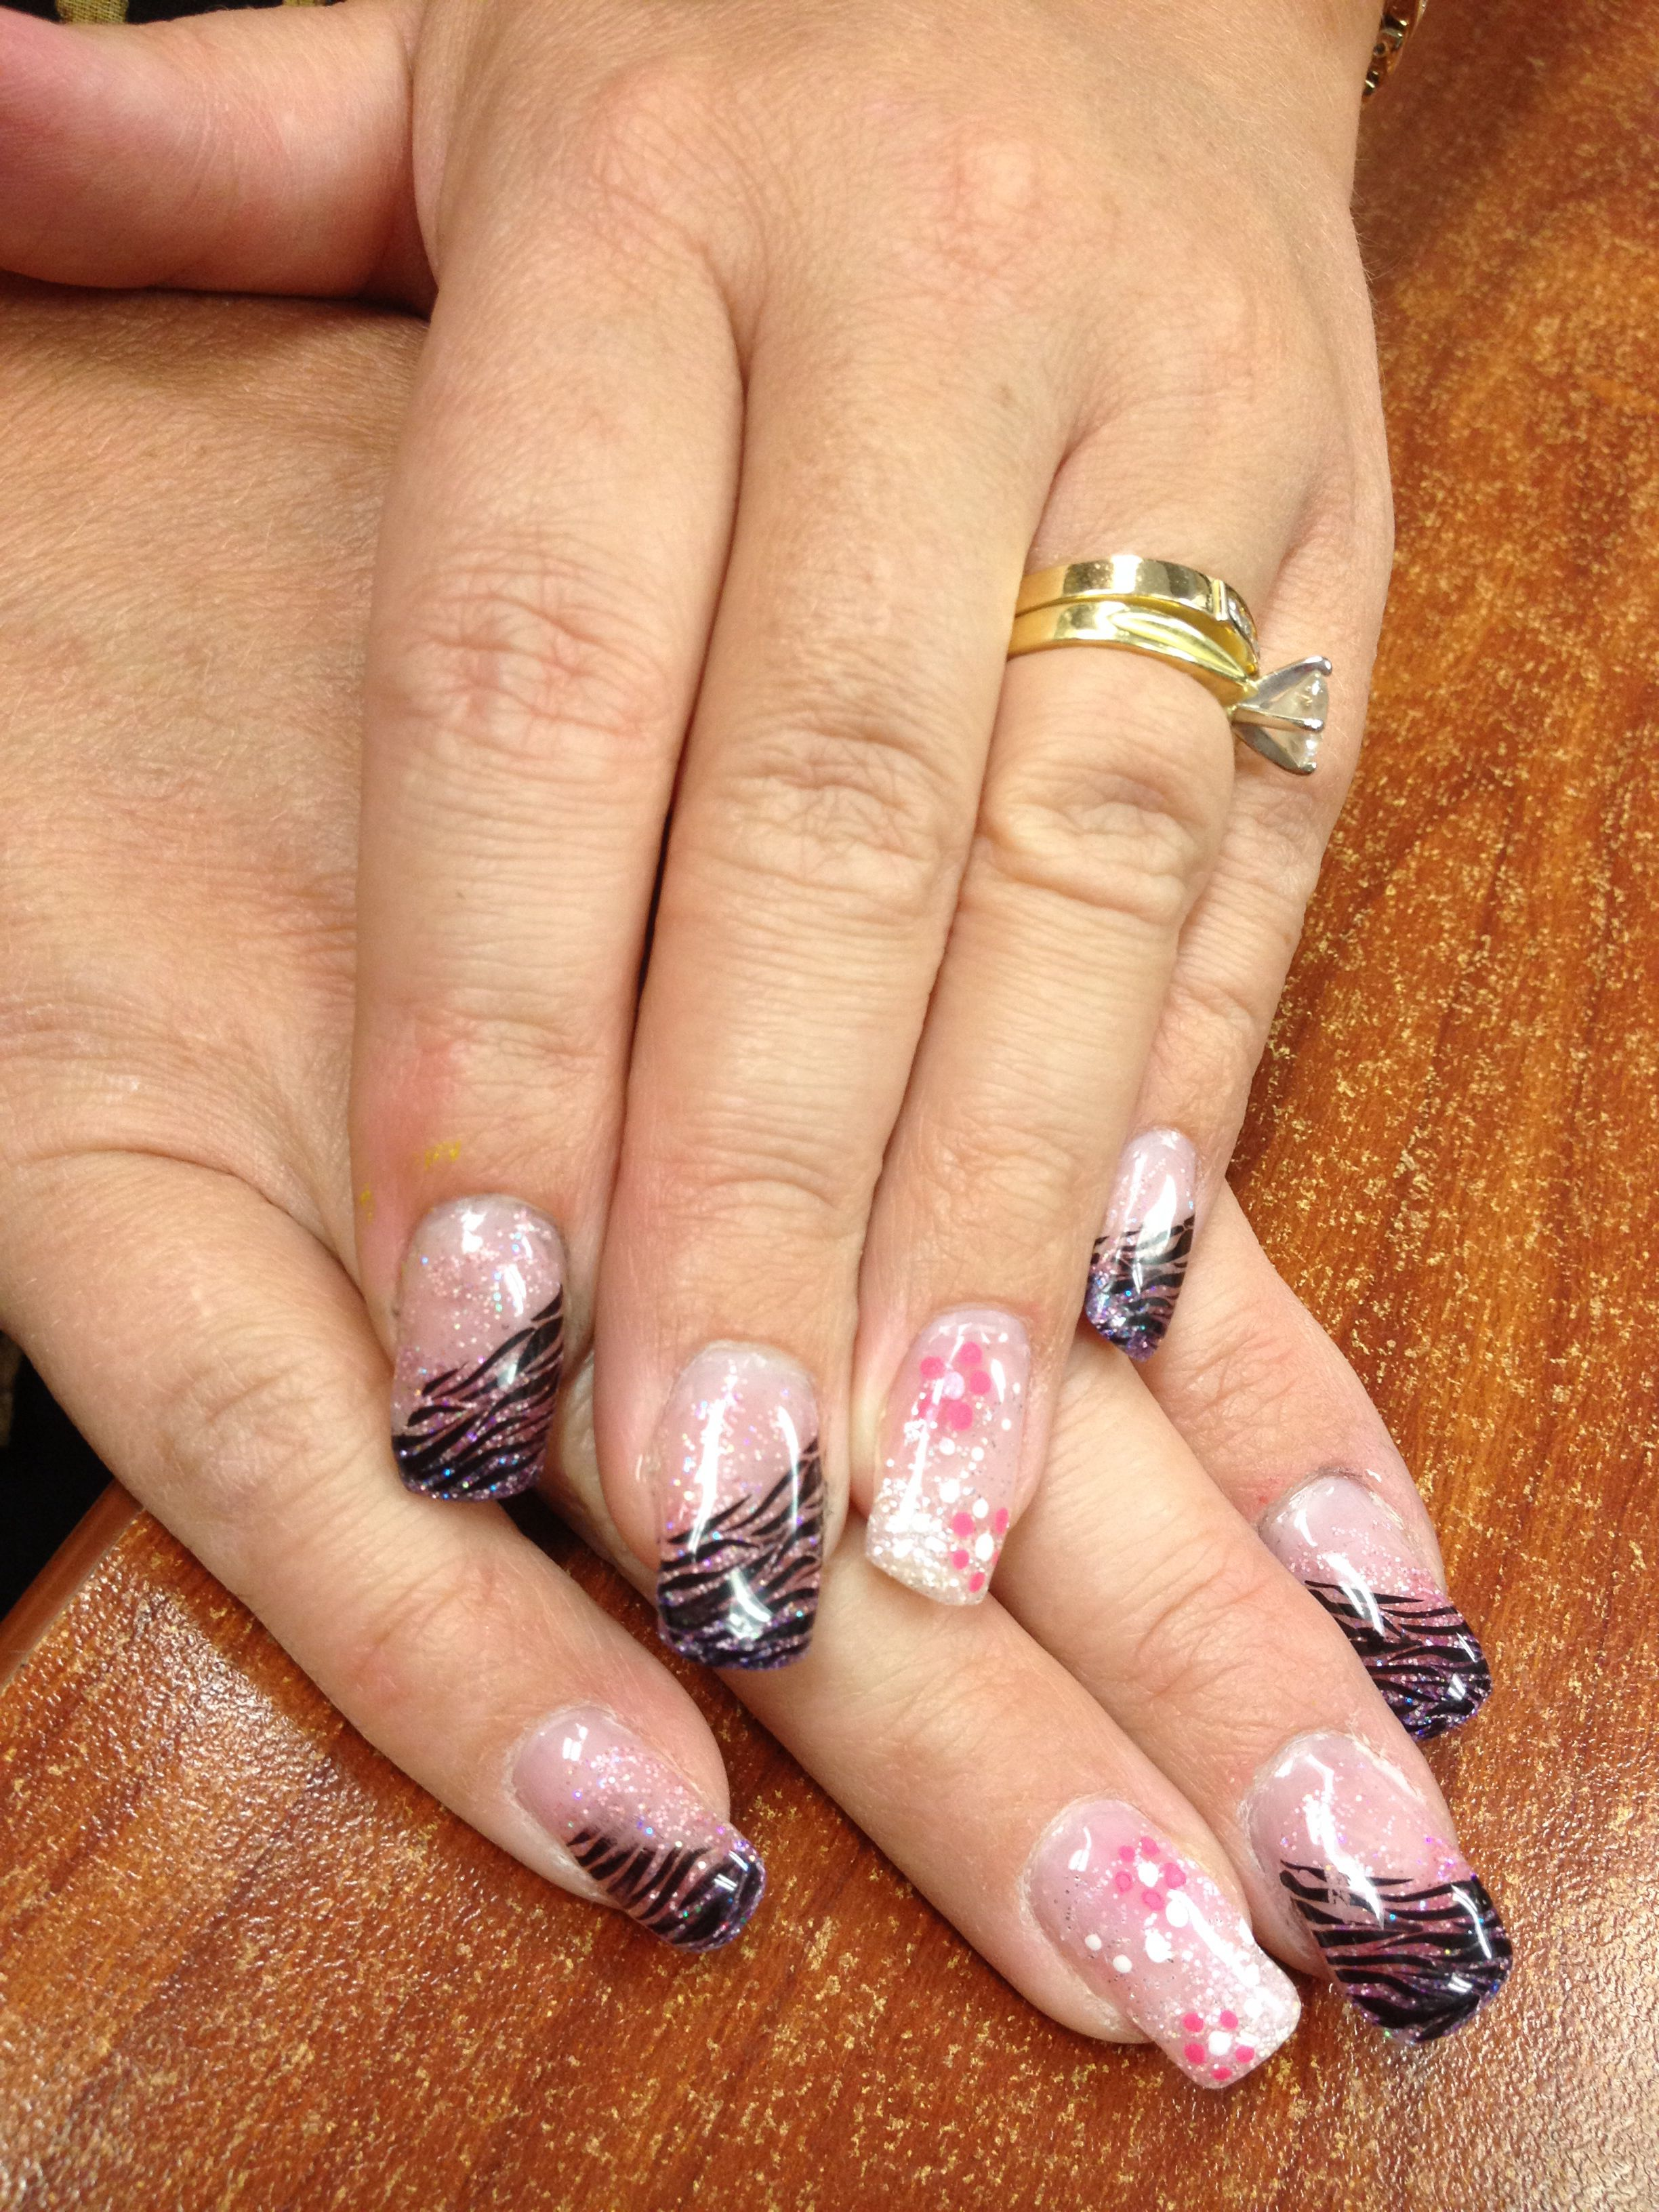 Fuzion gel nails with zebra and flowers | Gel nails | Pinterest